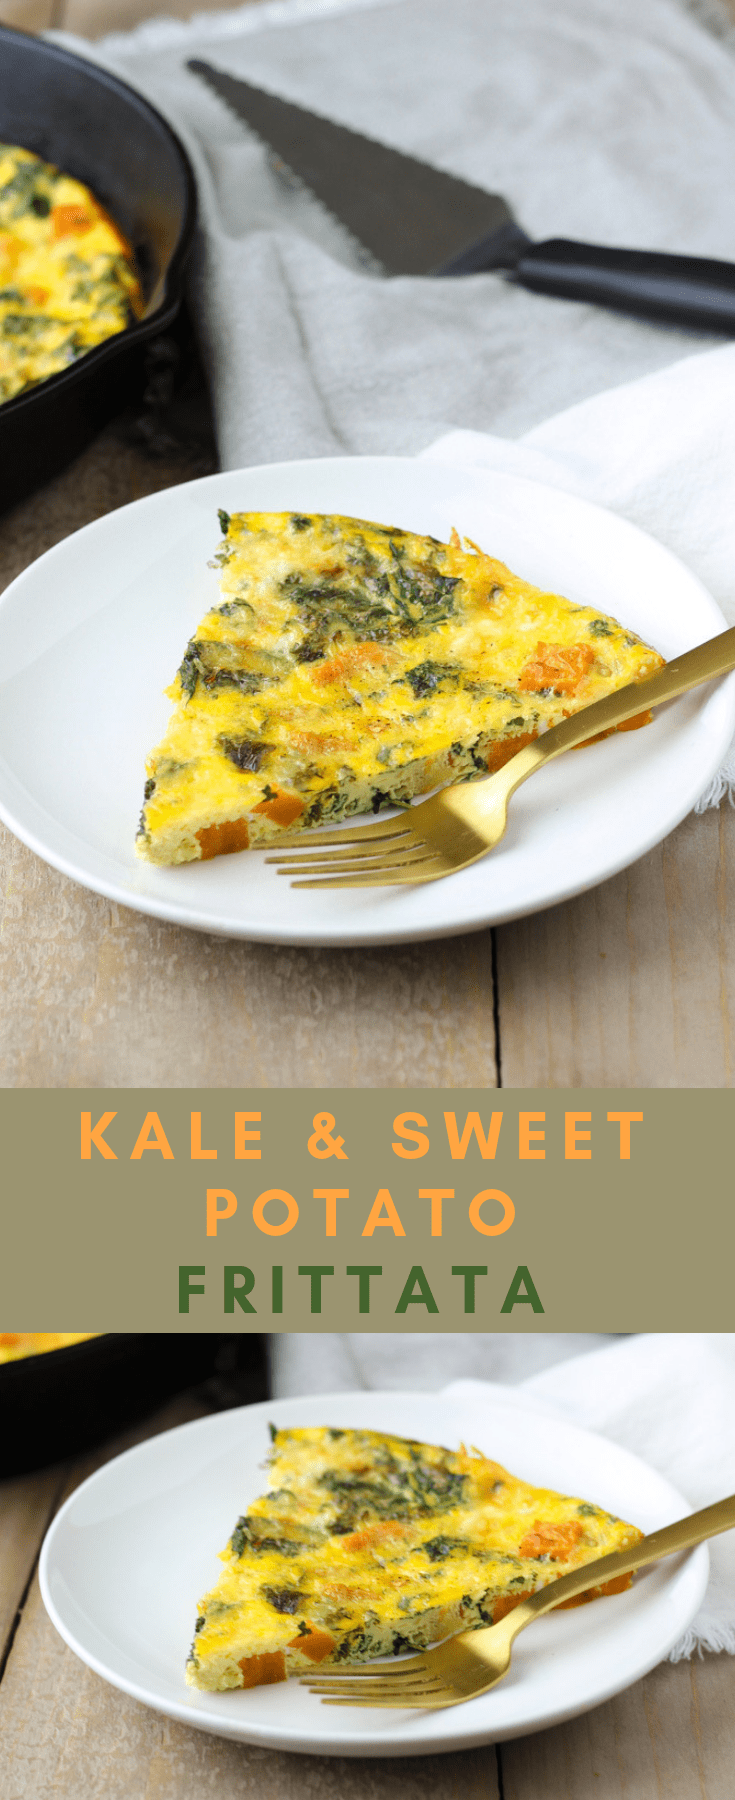 Frittata with kale